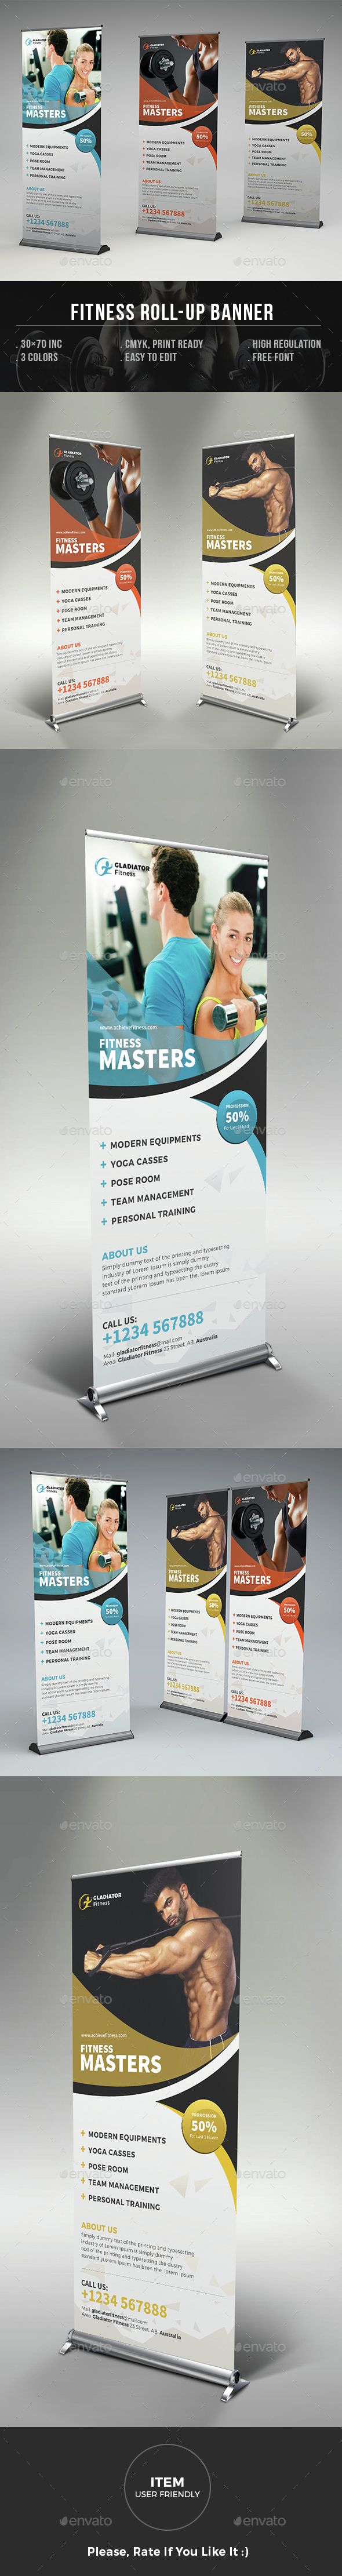 Fitness Roll-up Banner Template PSD. Download here: http://graphicriver.net/item/fitness-rollup-banner/14880965?ref=ksioks